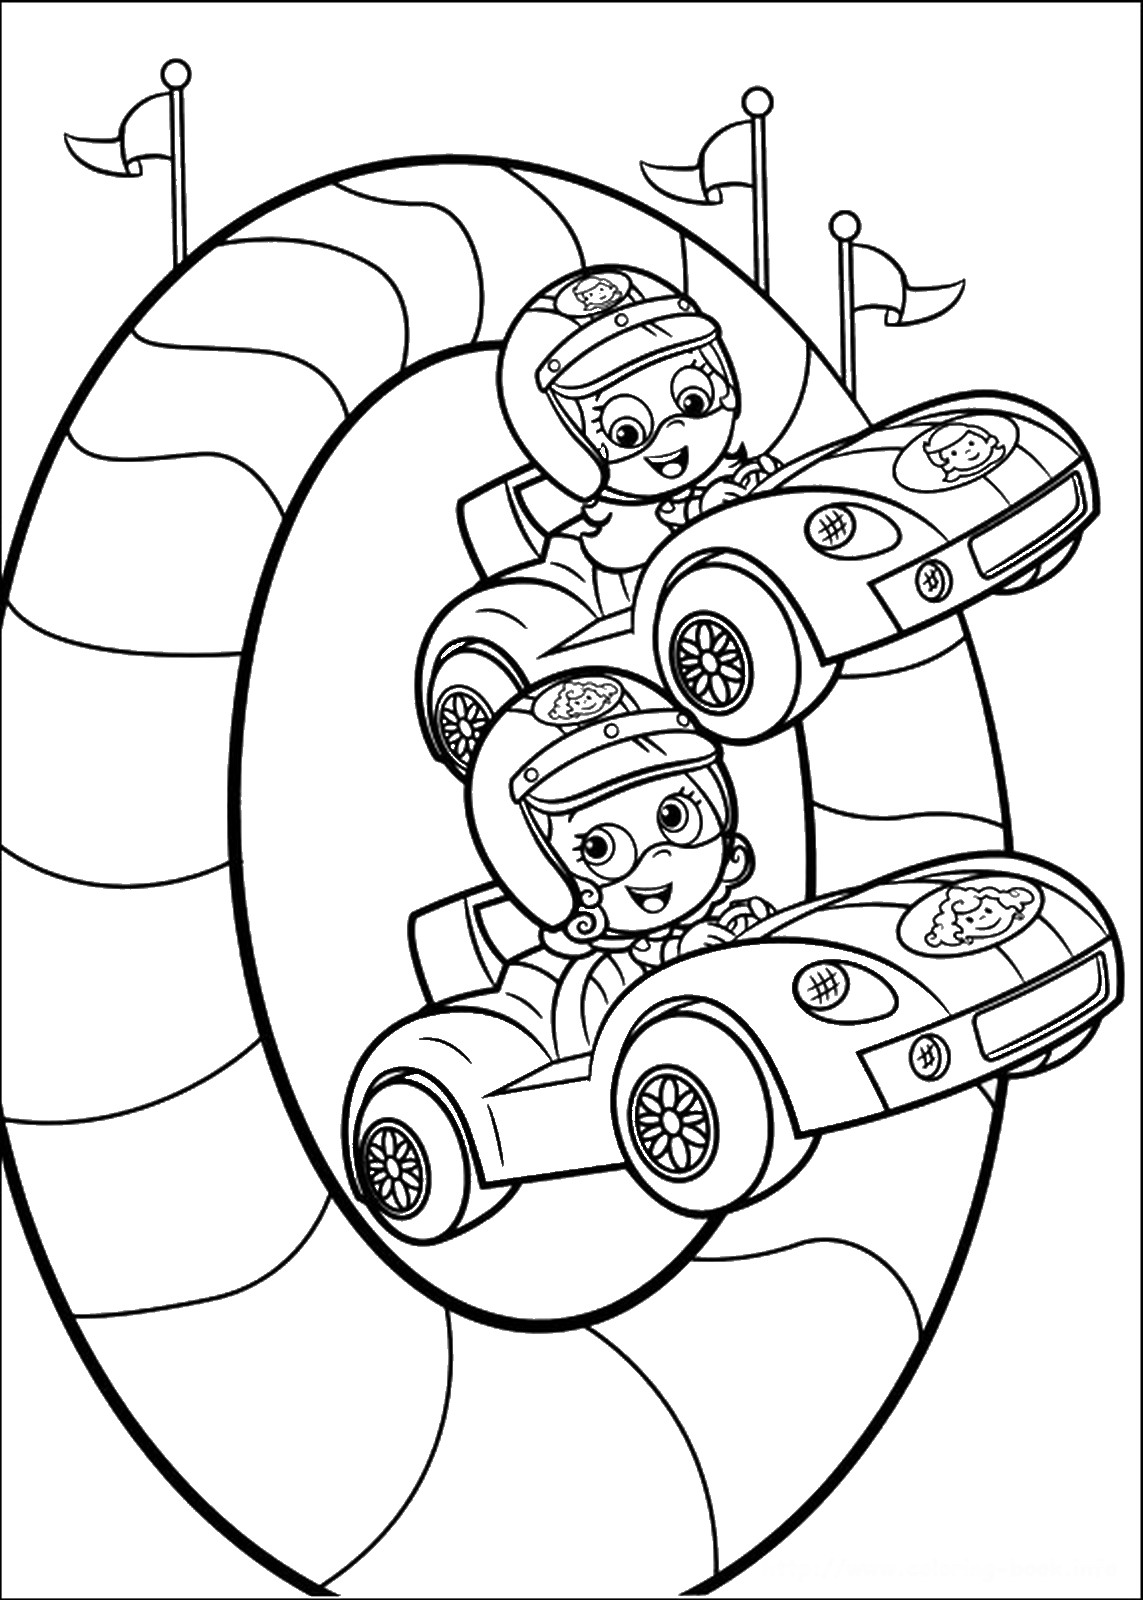 m bubble printable coloring pages - photo #28